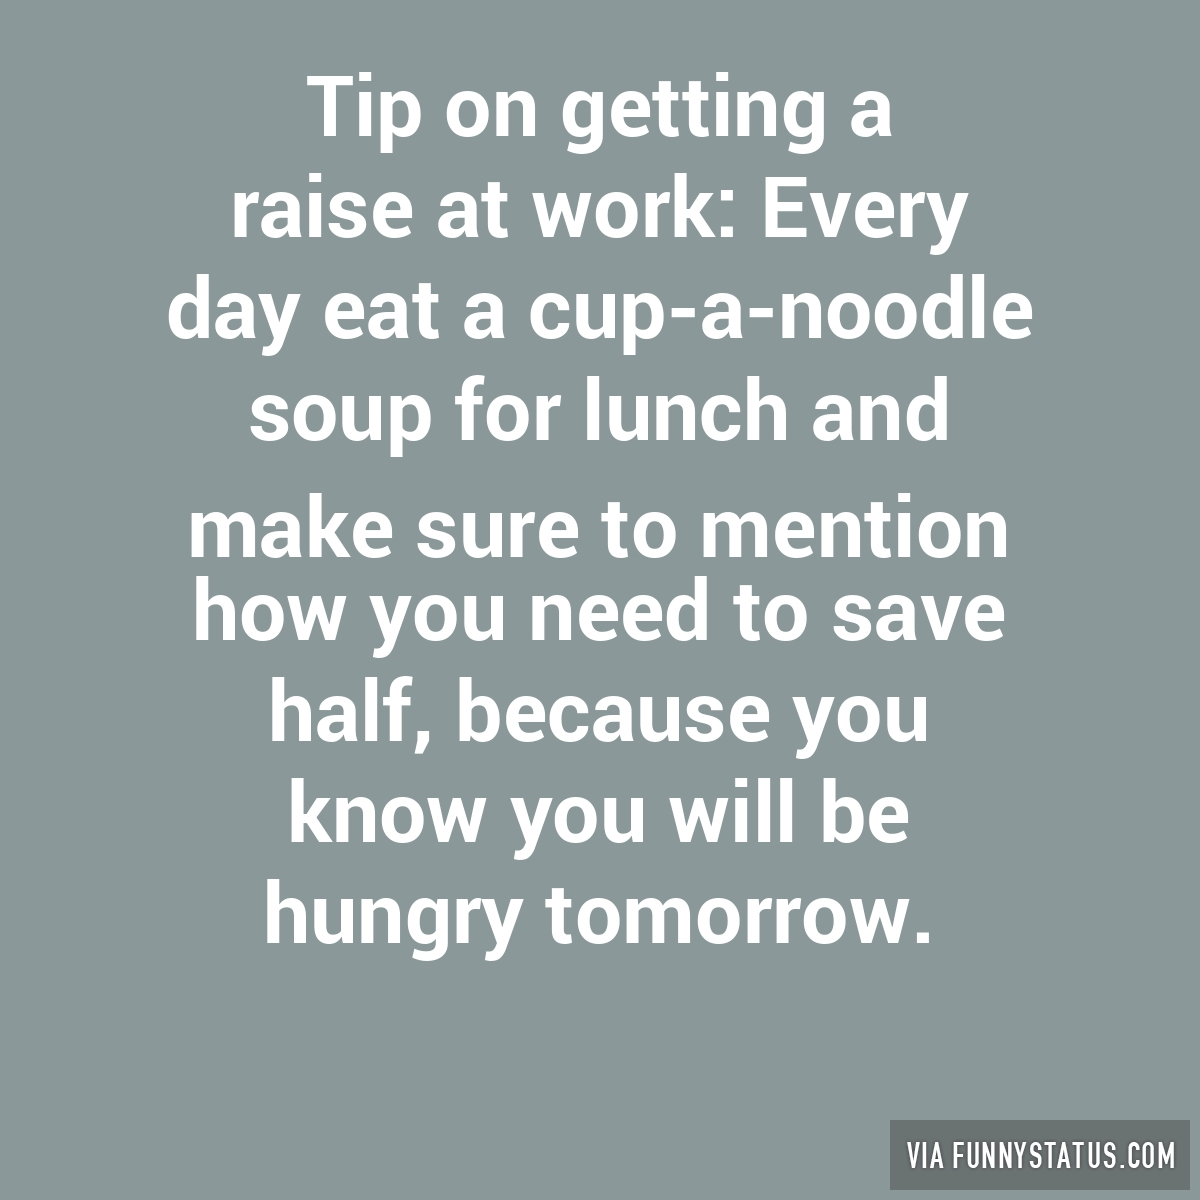 tip on getting a raise at work every day eat a cup a noodle tip on getting a raise at work every day eat a cup a noodle funny status